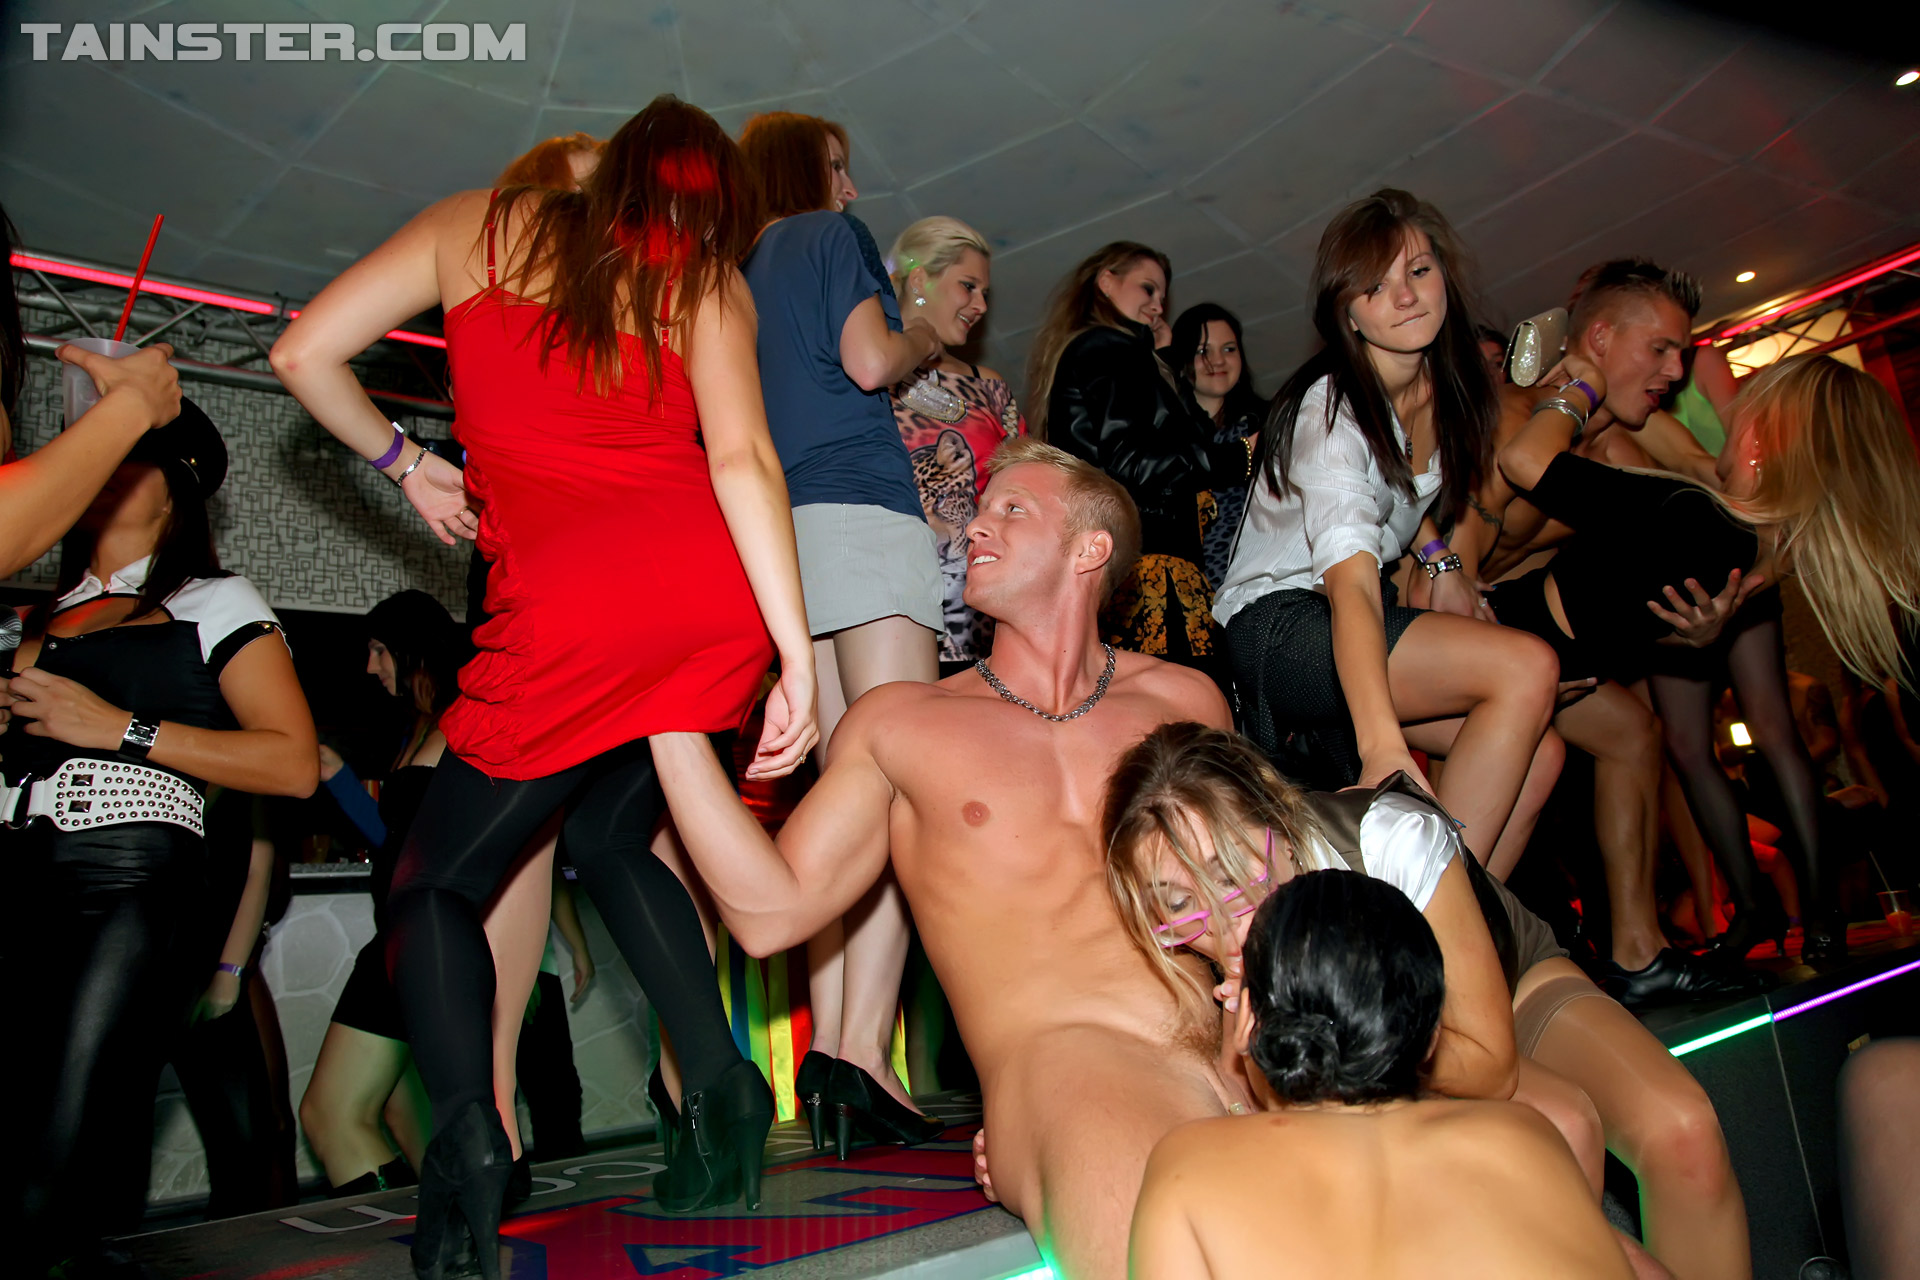 Hardcore sex party pictures